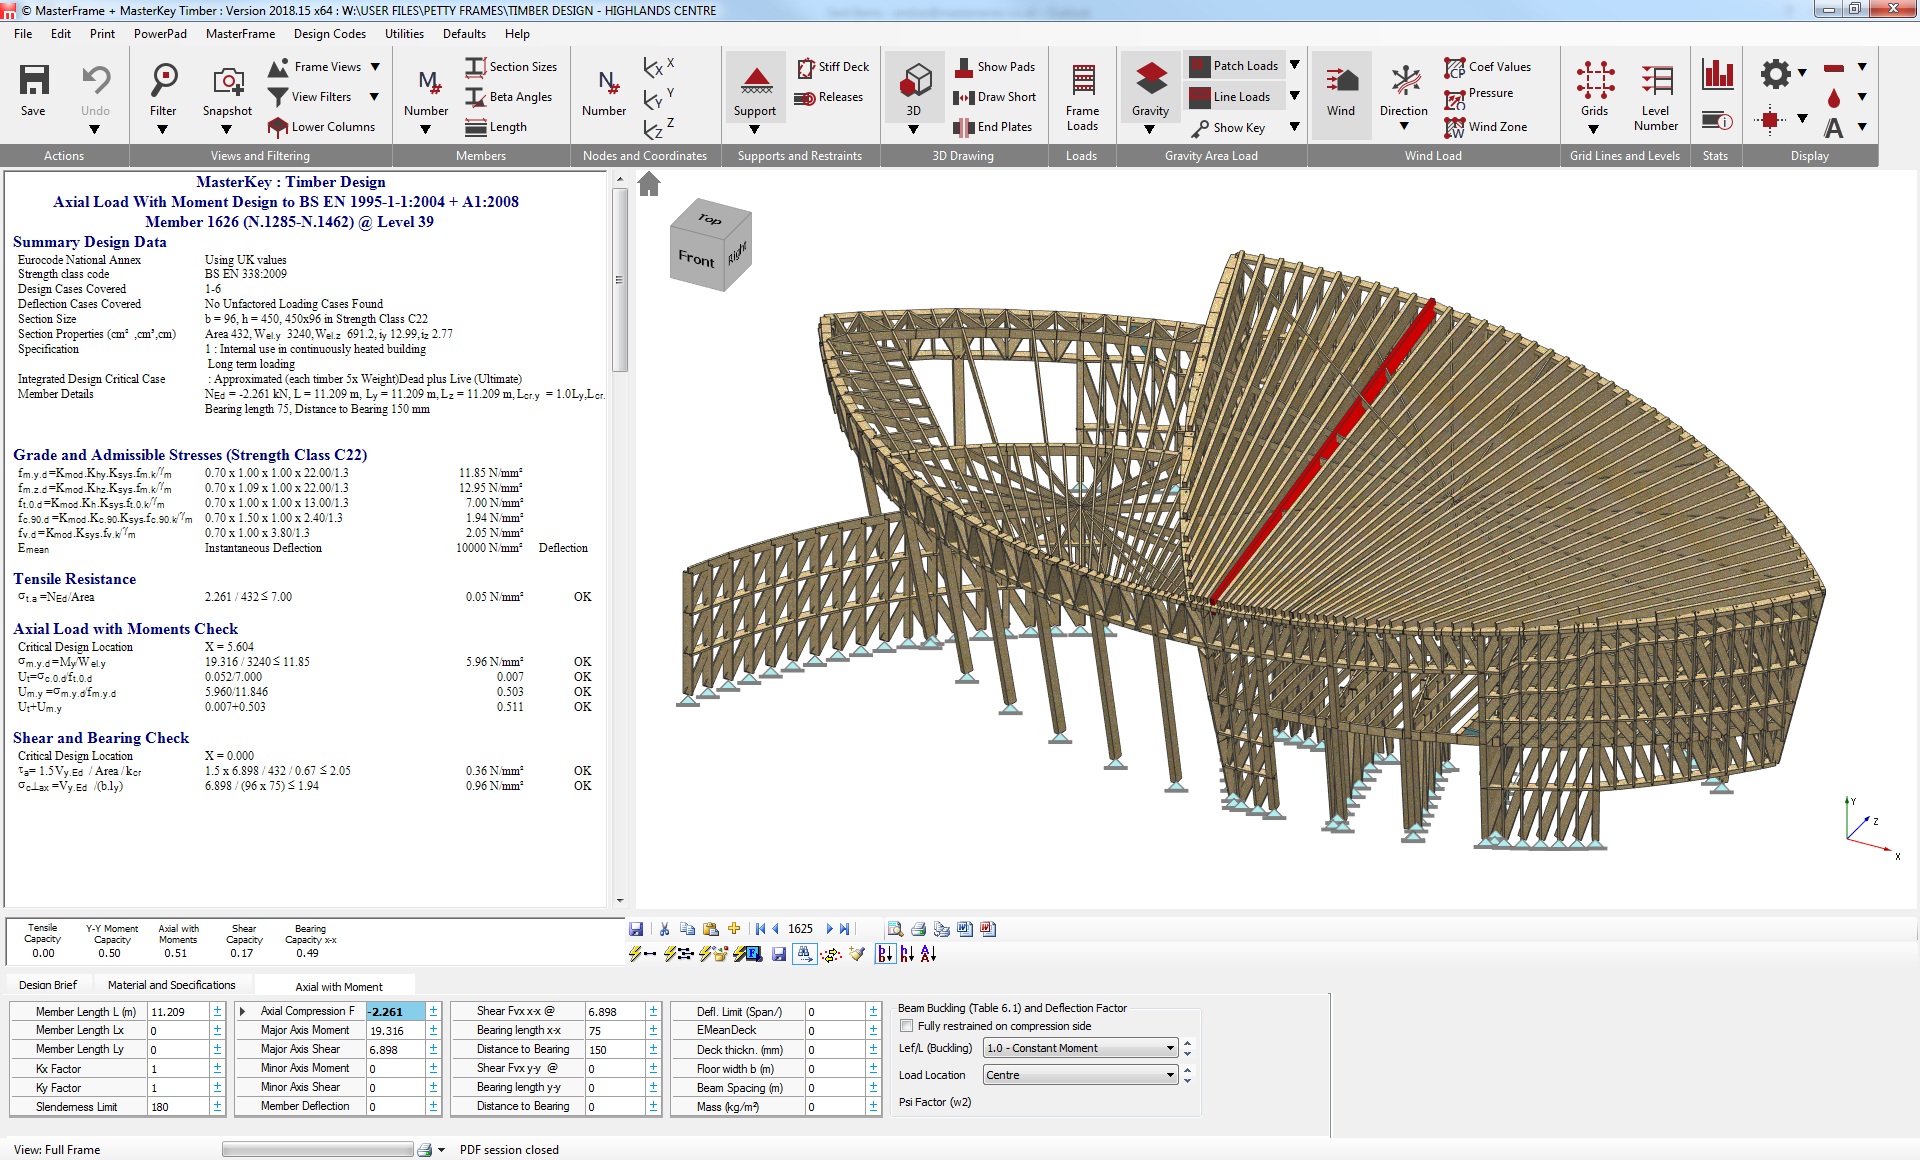 Integrated 3d timber structure analysis and design according to the Eurocode 5